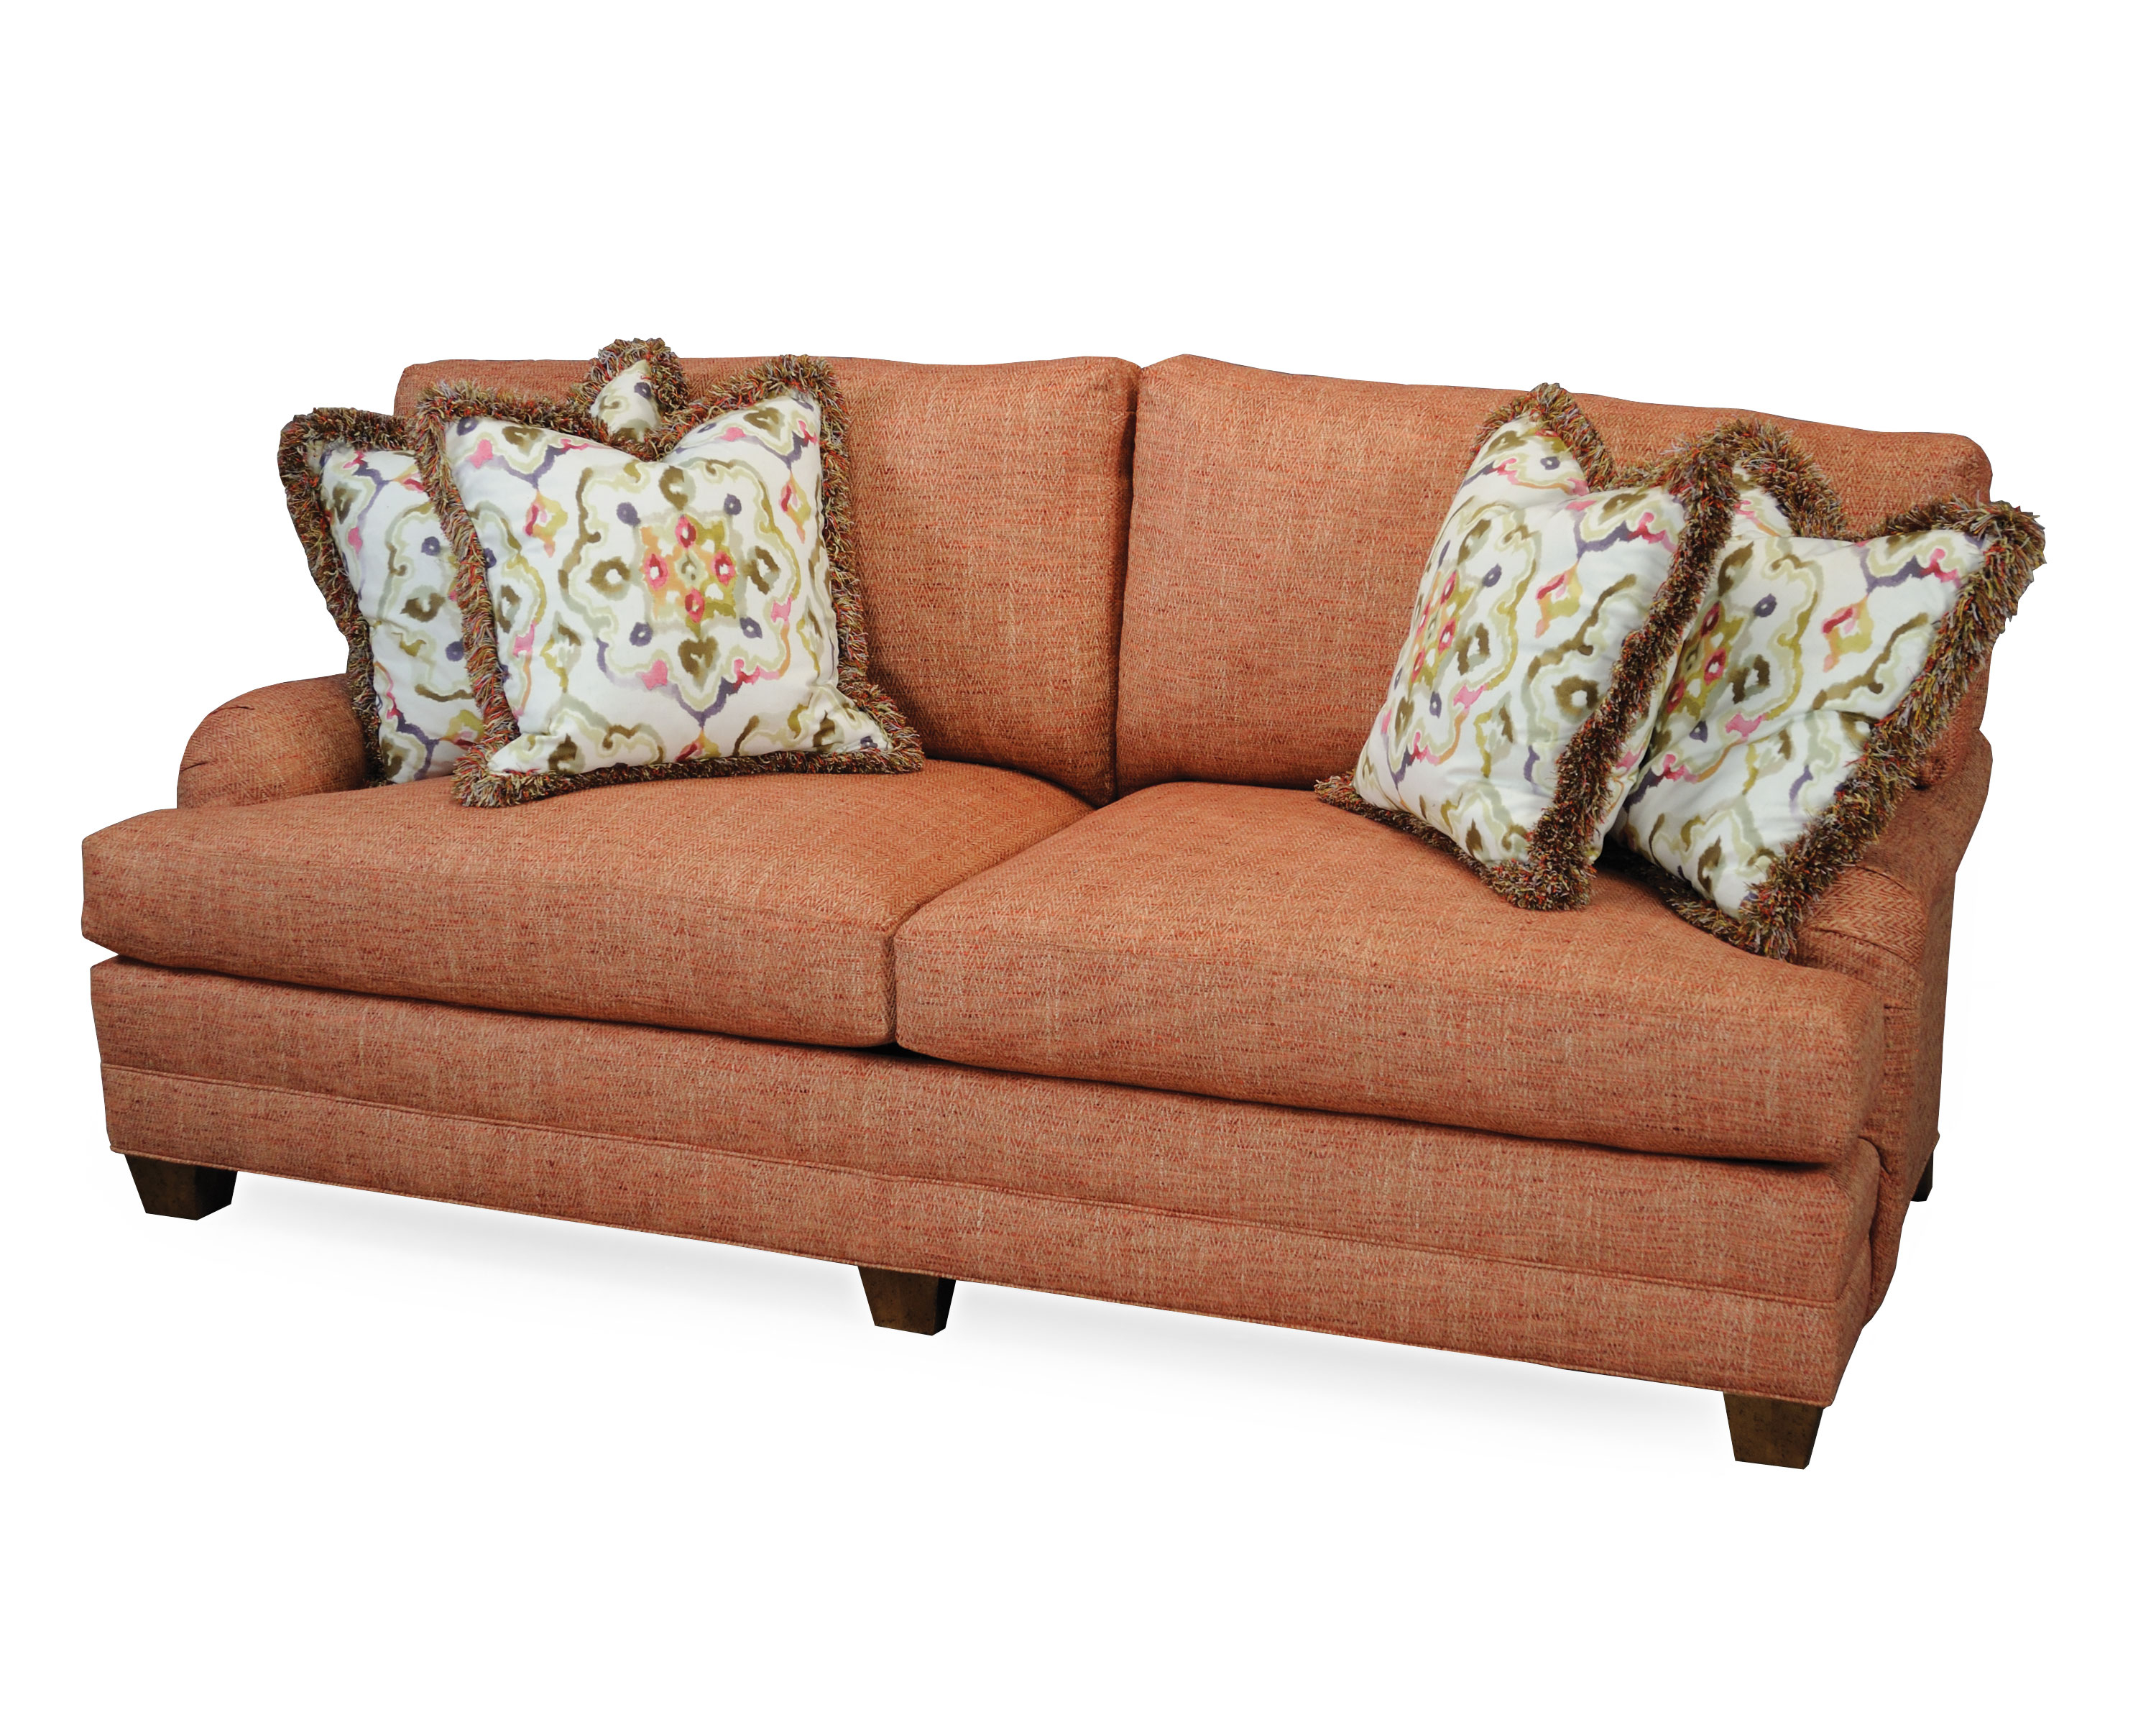 Stanford Furniture Intended For Well Known Abigail Ii Sofa Chairs (Gallery 2 of 20)